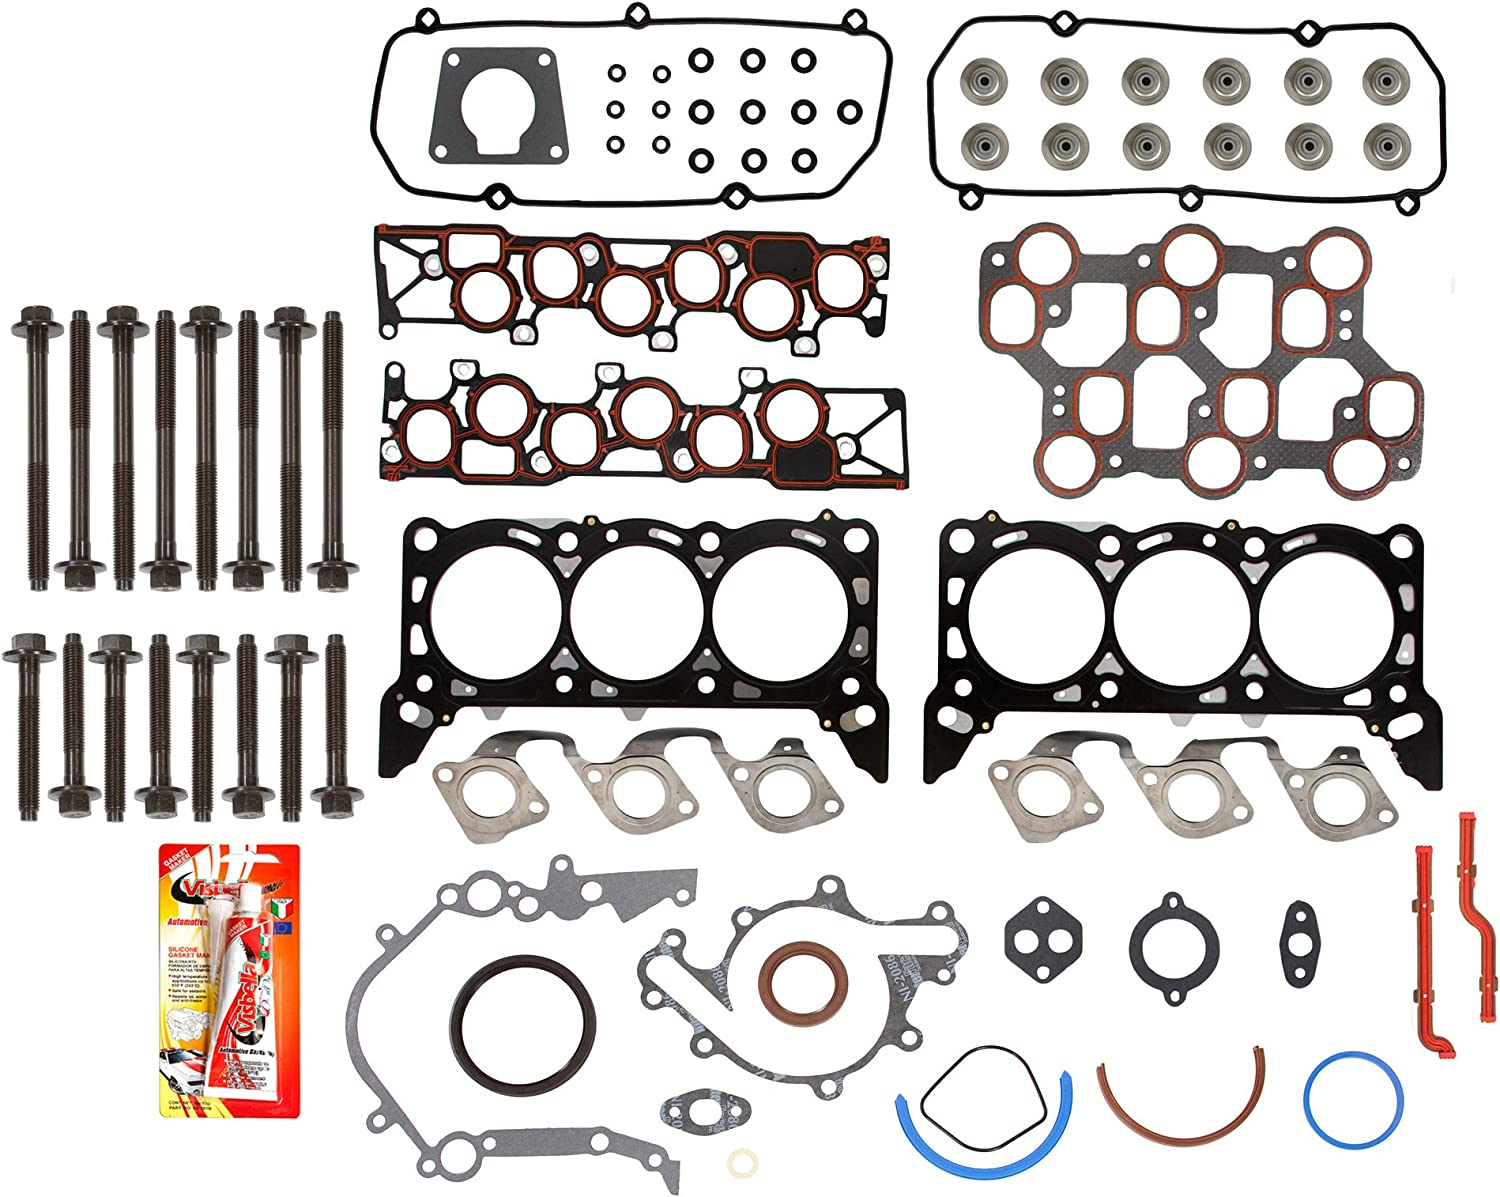 Fits 01-04 Ford Mustang 3.8 /& 3.9 V6 OHV 12V VIN 4,6 Full Gasket Set